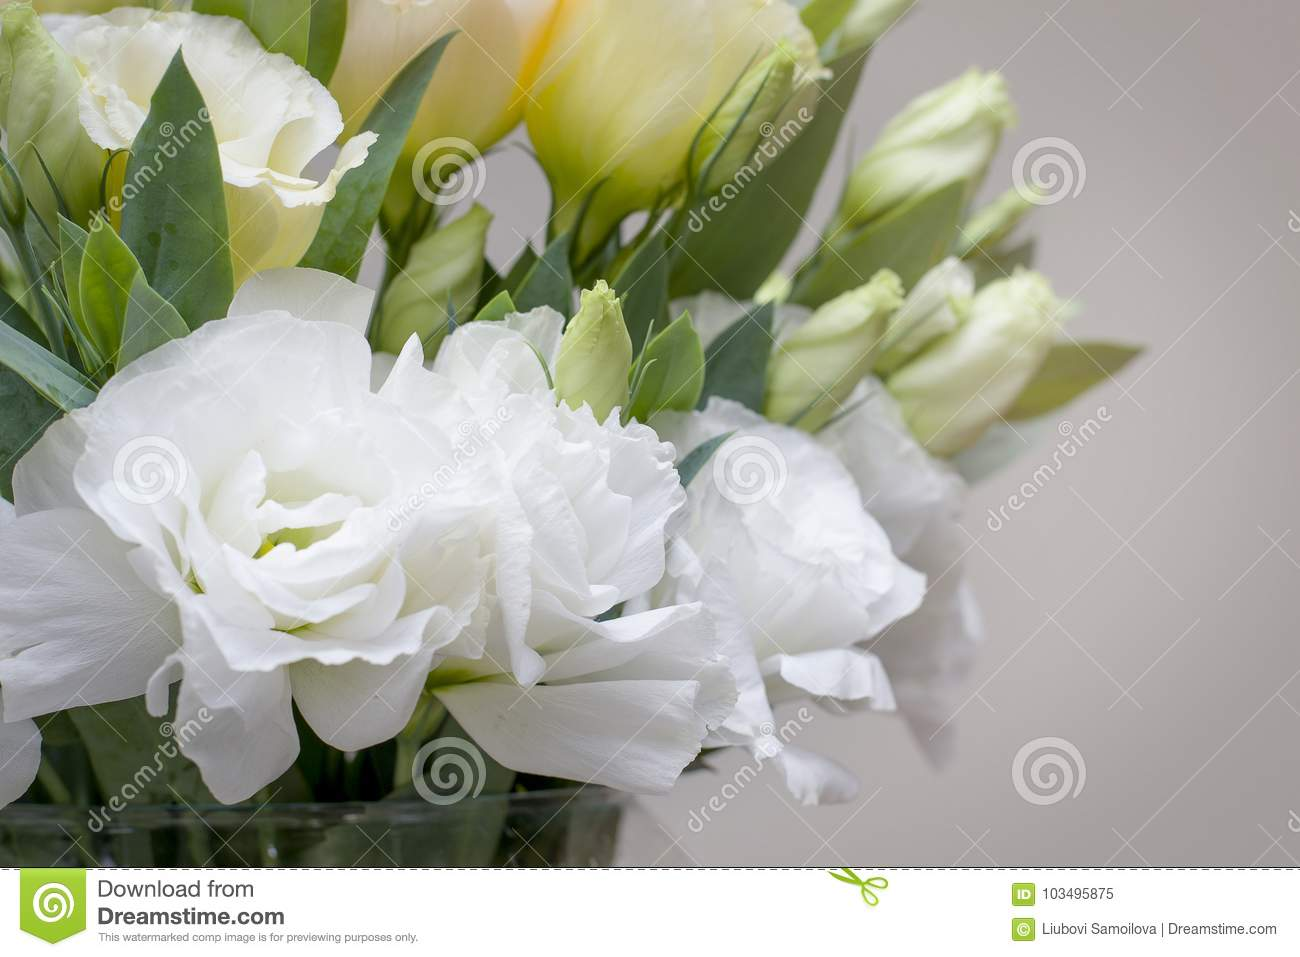 Beautiful white lisianthus flowers look so much alike roses stock download beautiful white lisianthus flowers look so much alike roses stock image image of death mightylinksfo